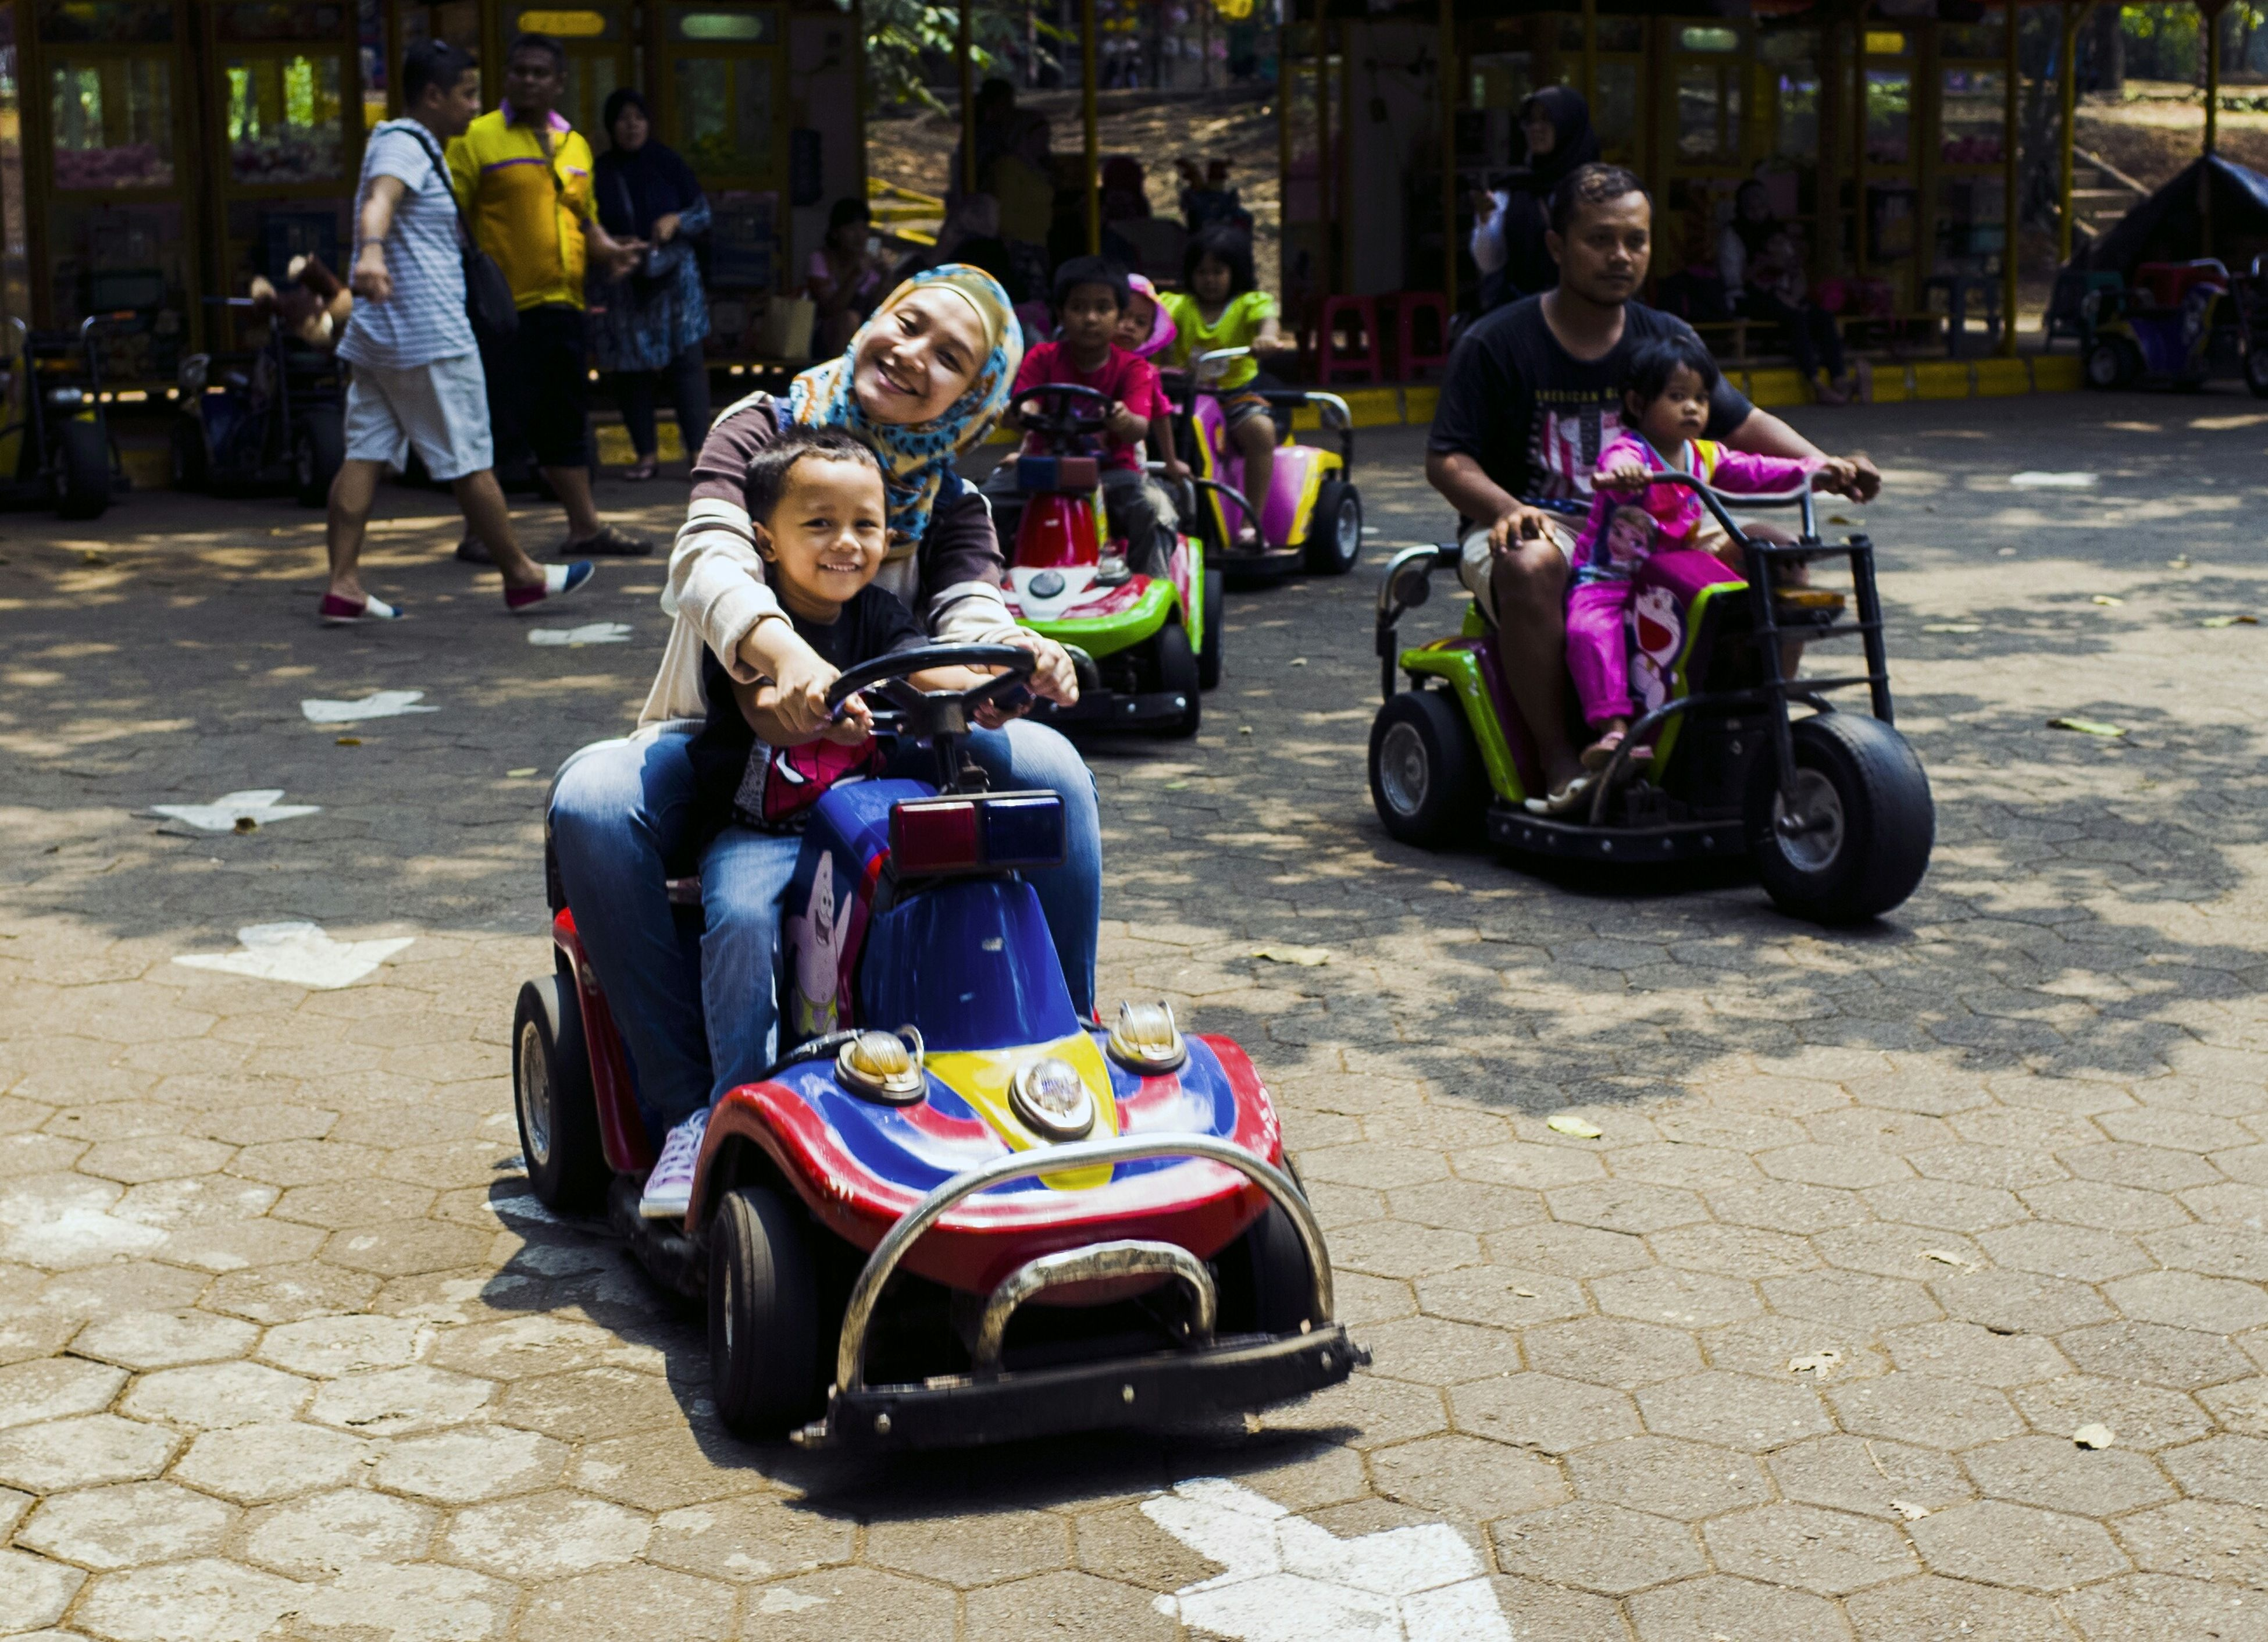 full length, lifestyles, leisure activity, casual clothing, land vehicle, street, person, transportation, childhood, mode of transport, boys, front view, togetherness, elementary age, girls, smiling, portrait